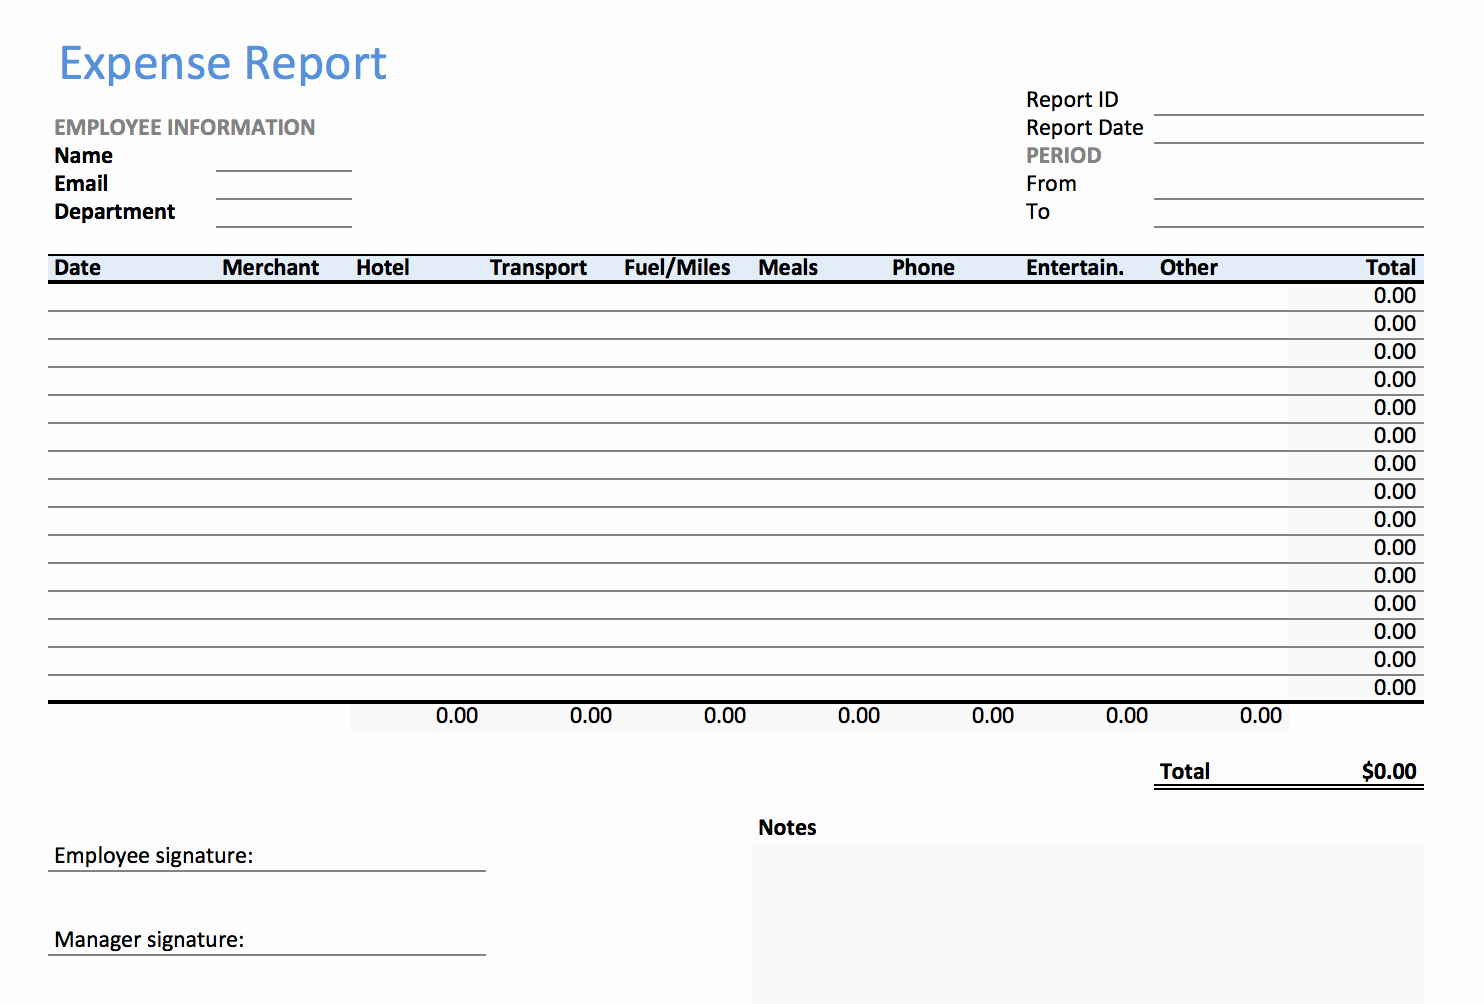 Excel Expense Report Template Free New Excel Expense Report Template Keepek